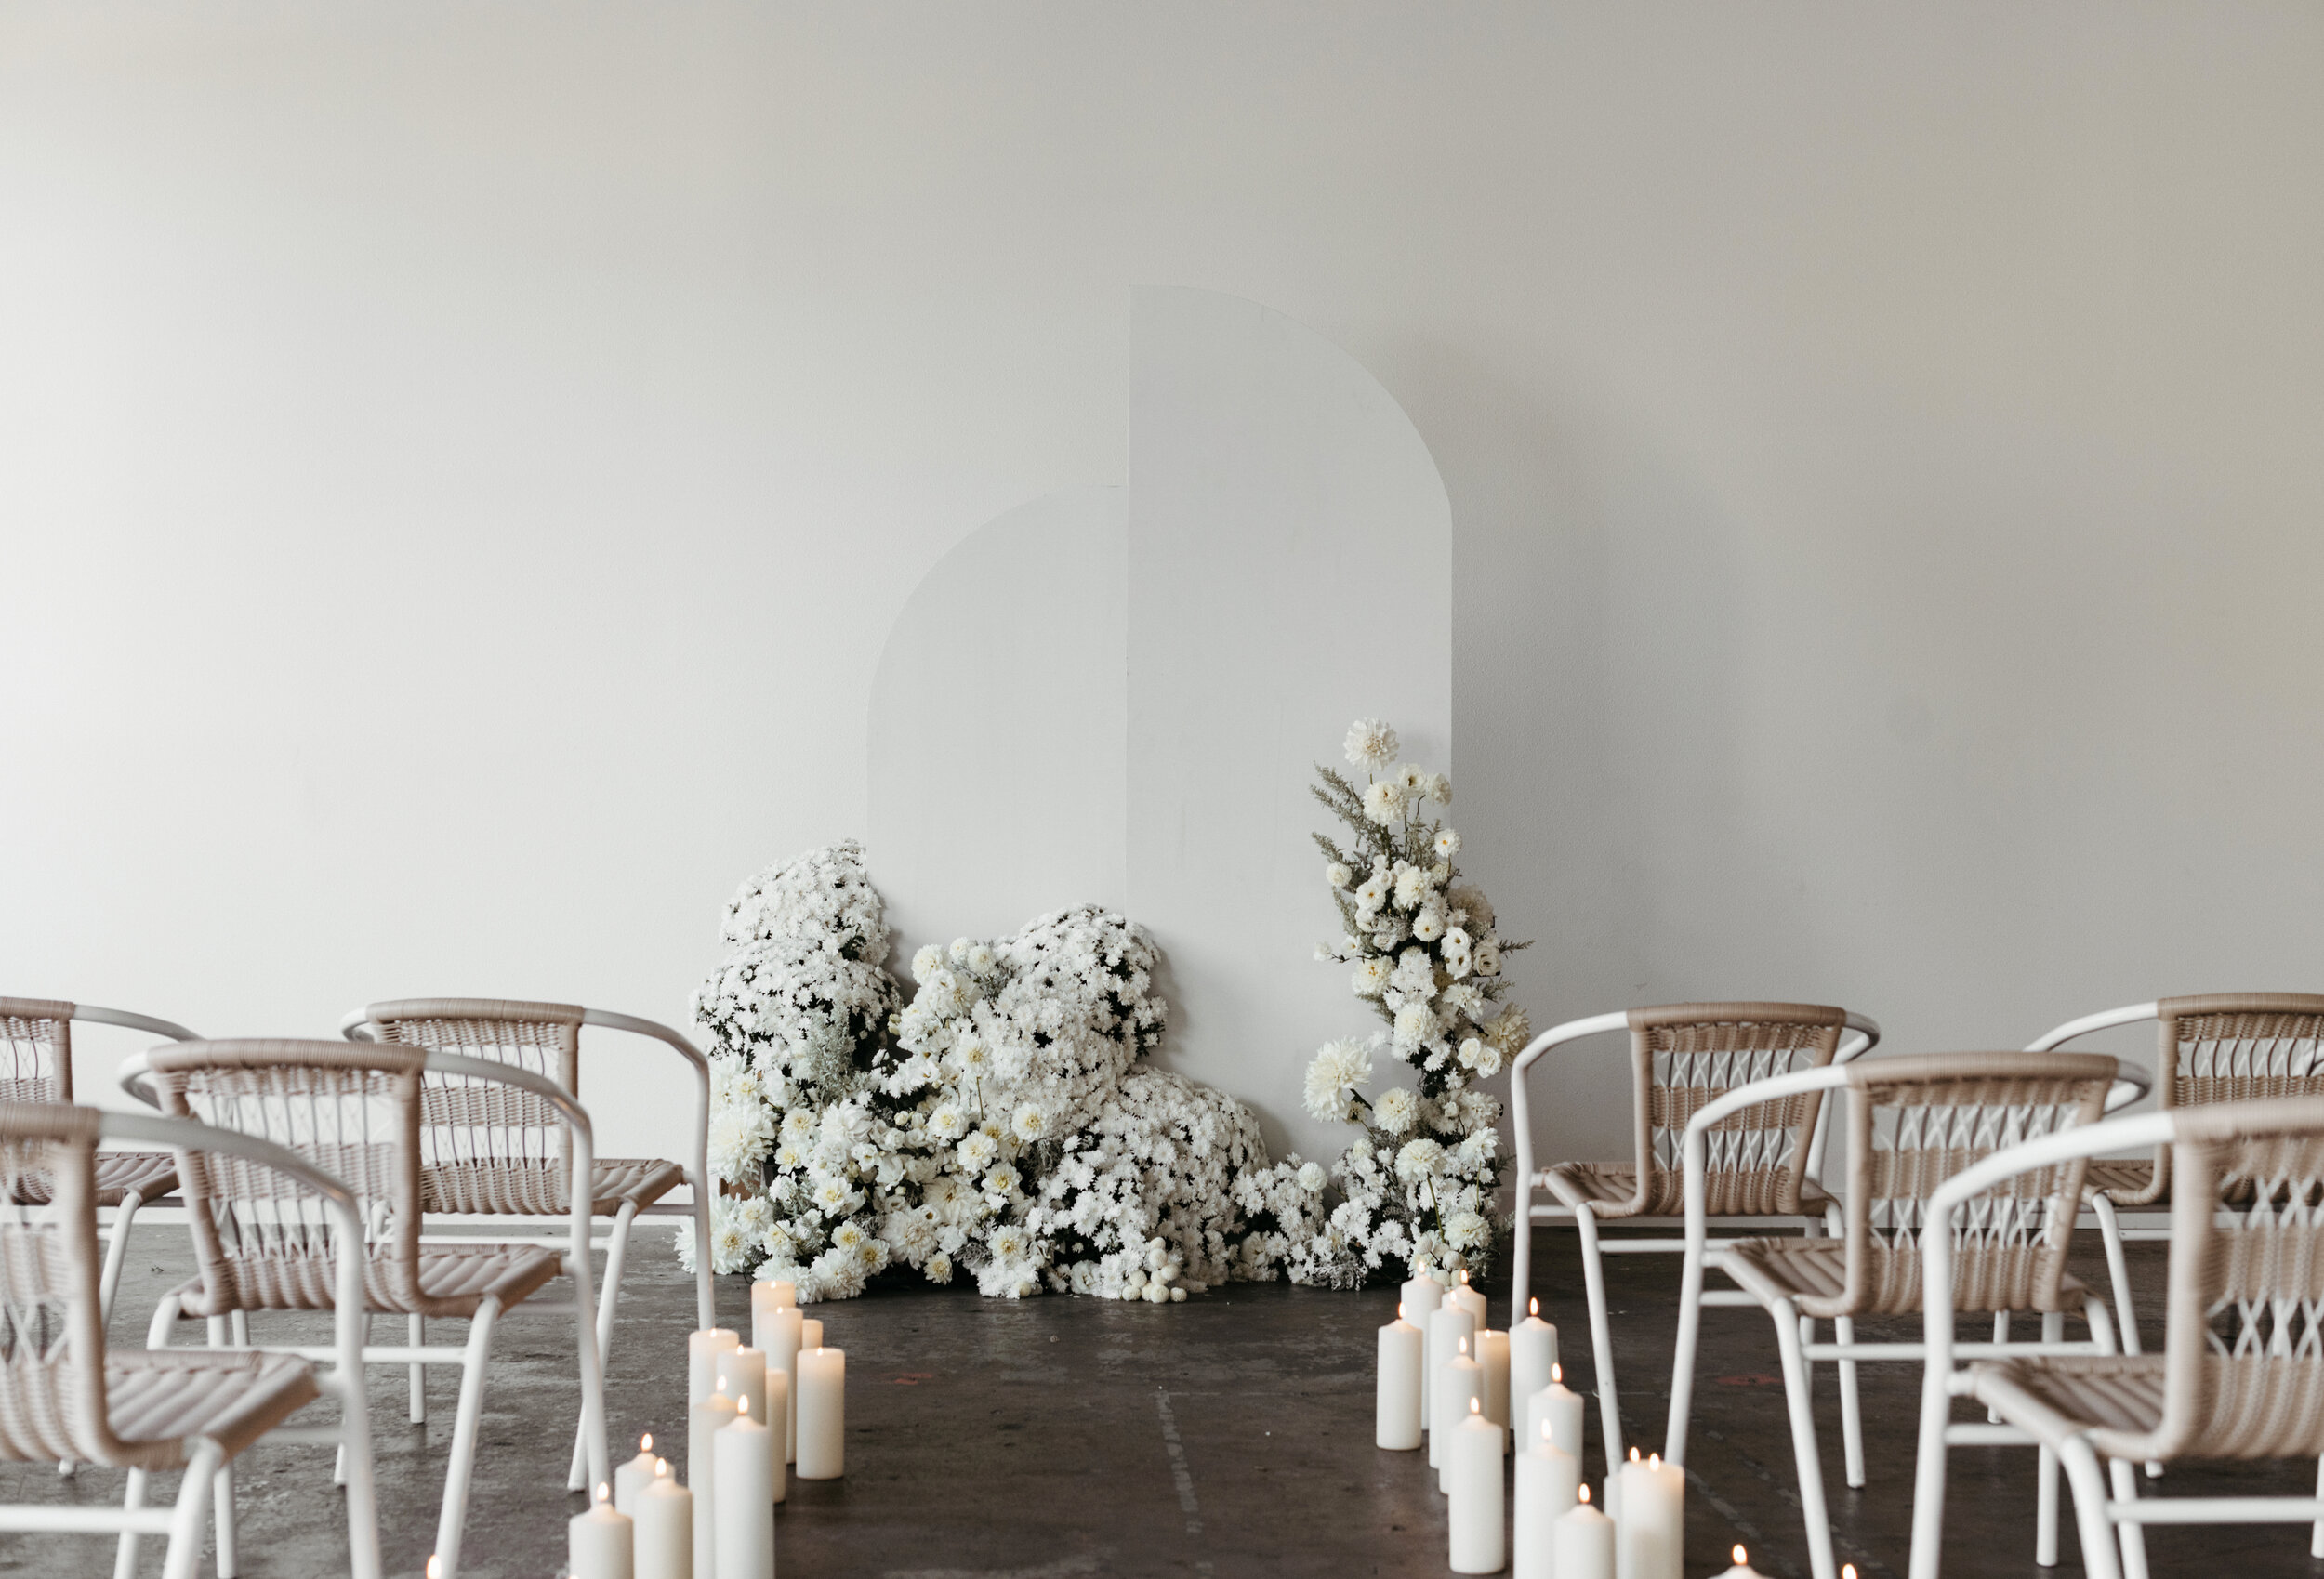 all white floral wedding backdrop